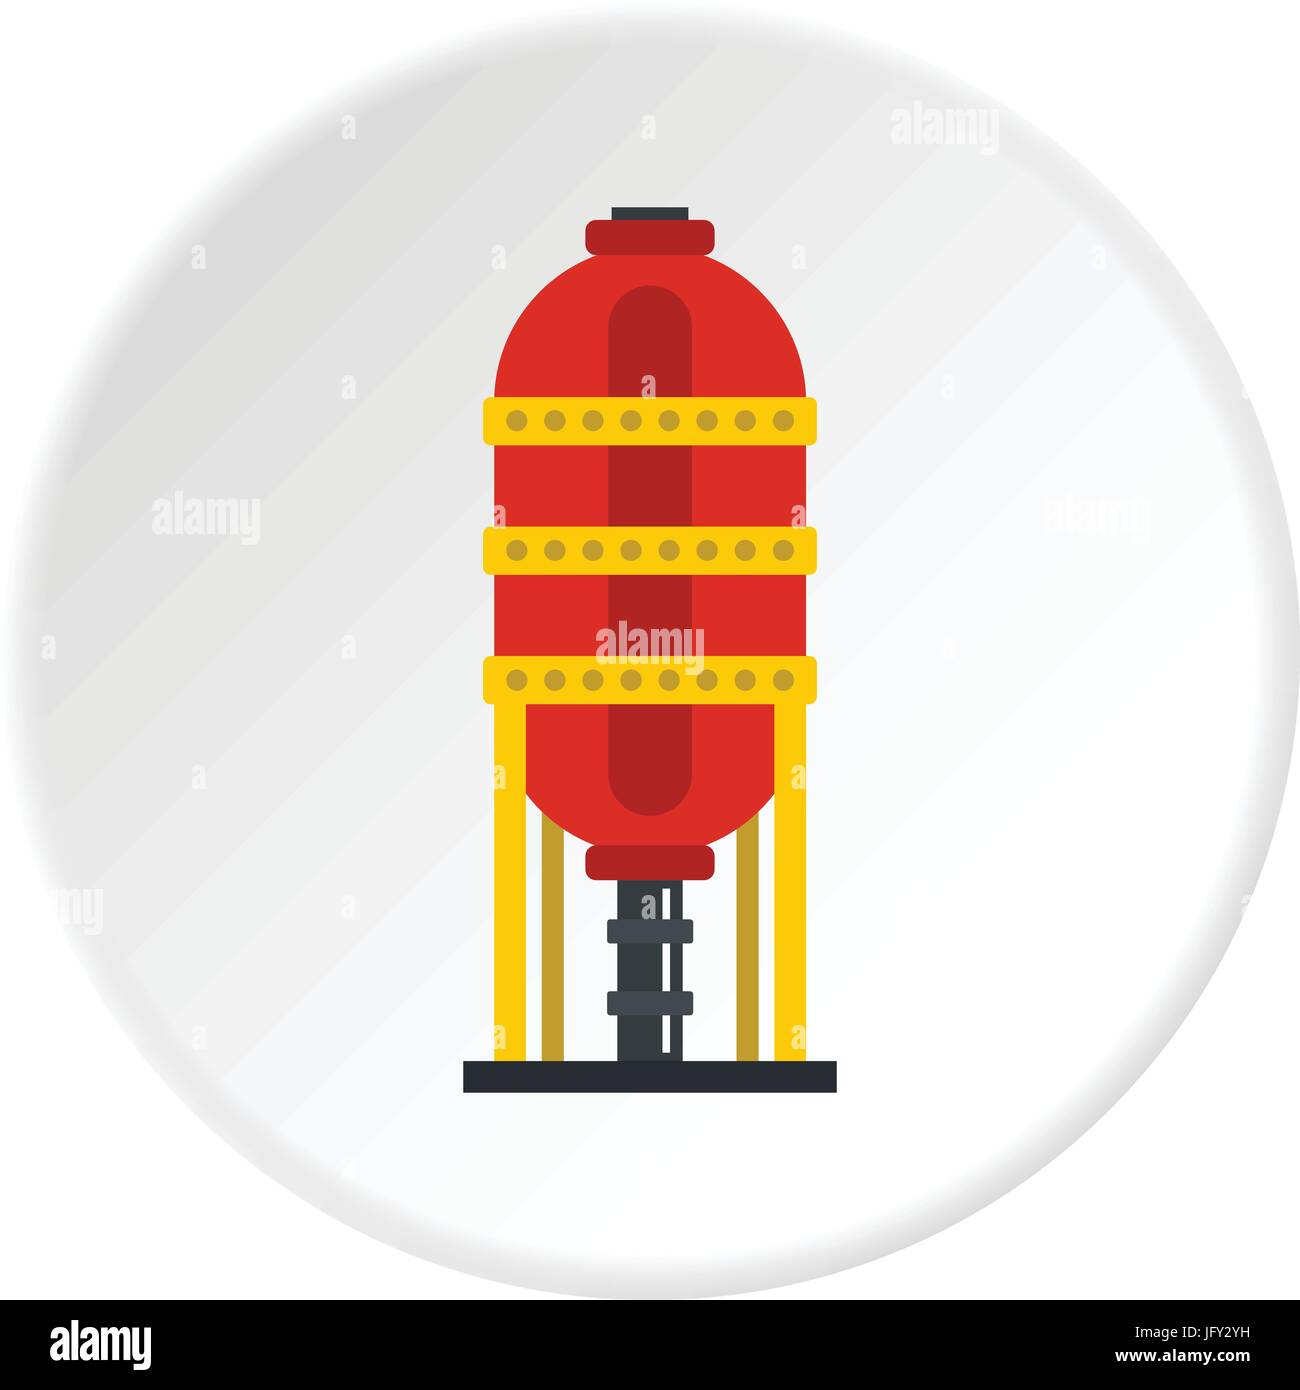 Capacity for oil storage icon circle - Stock Vector